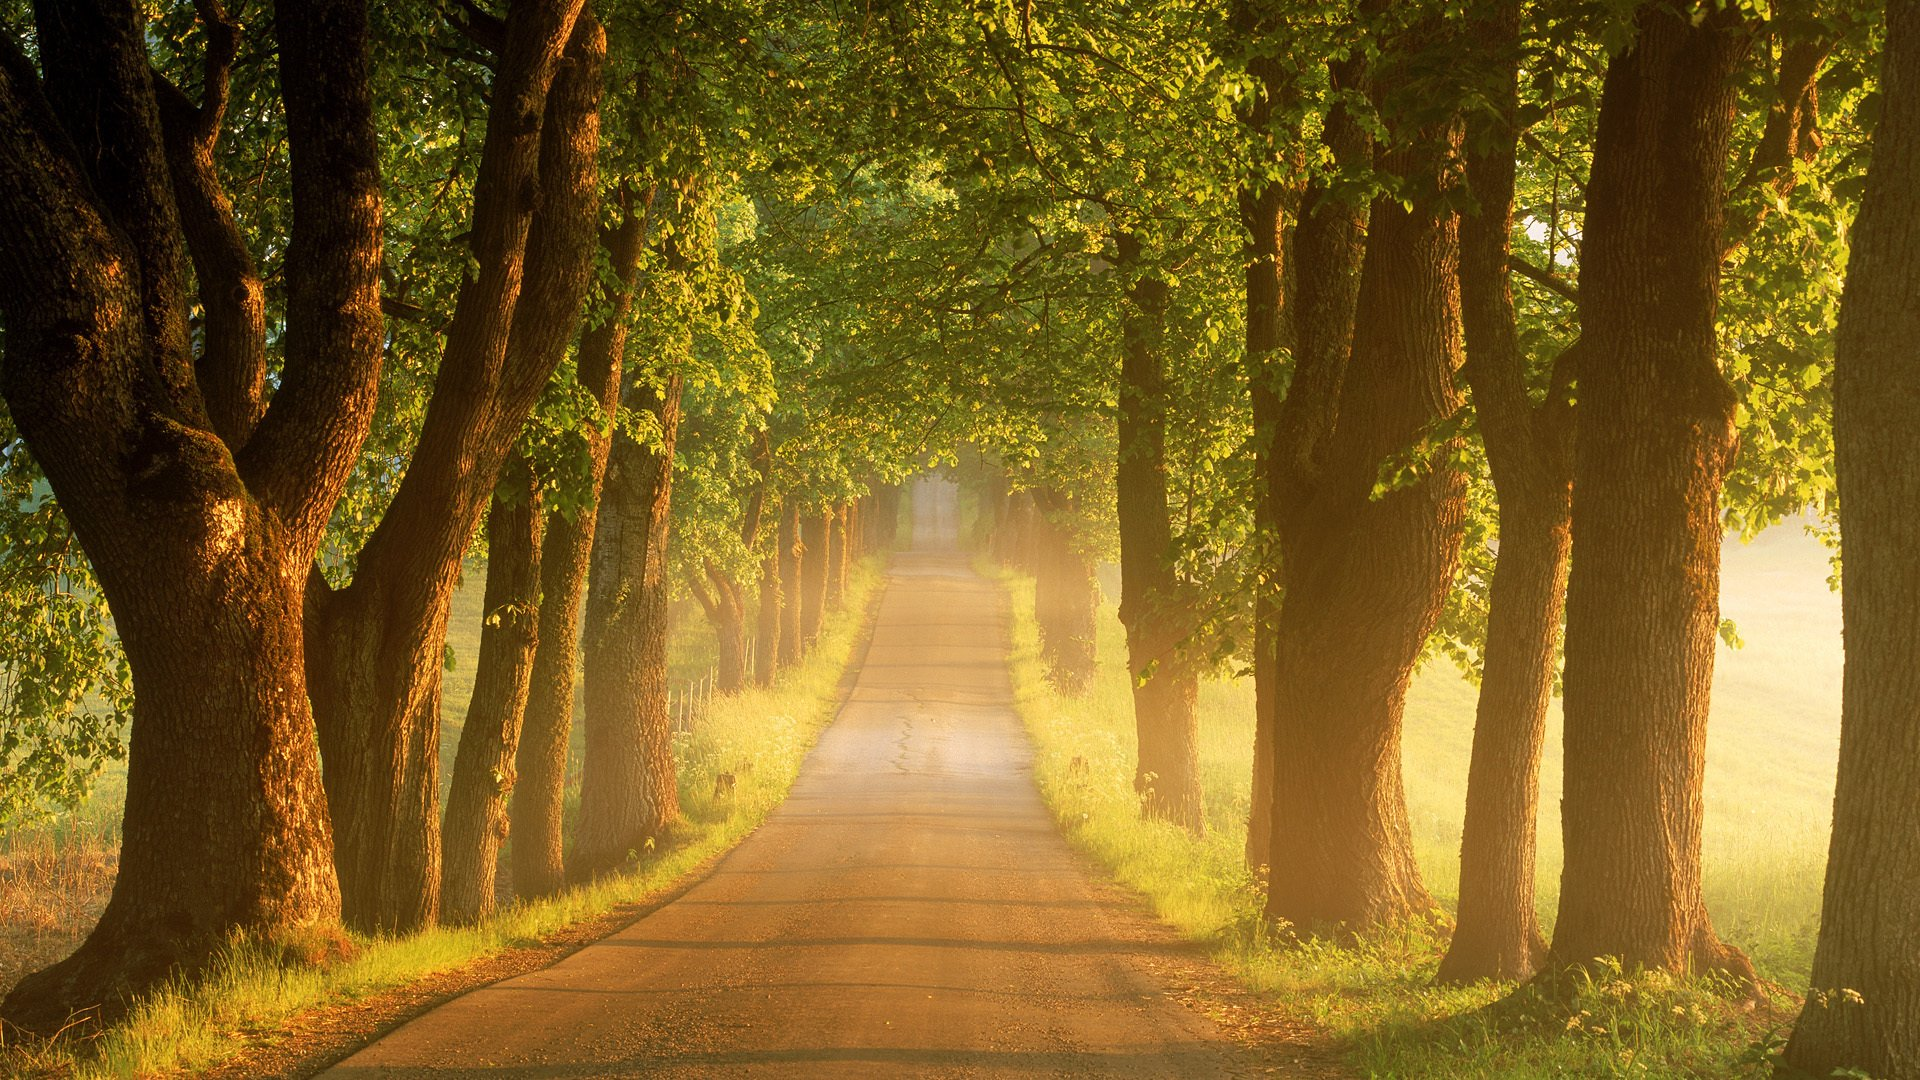 Nature Tree Light Road Sun Beauty Landscape Wallpaper